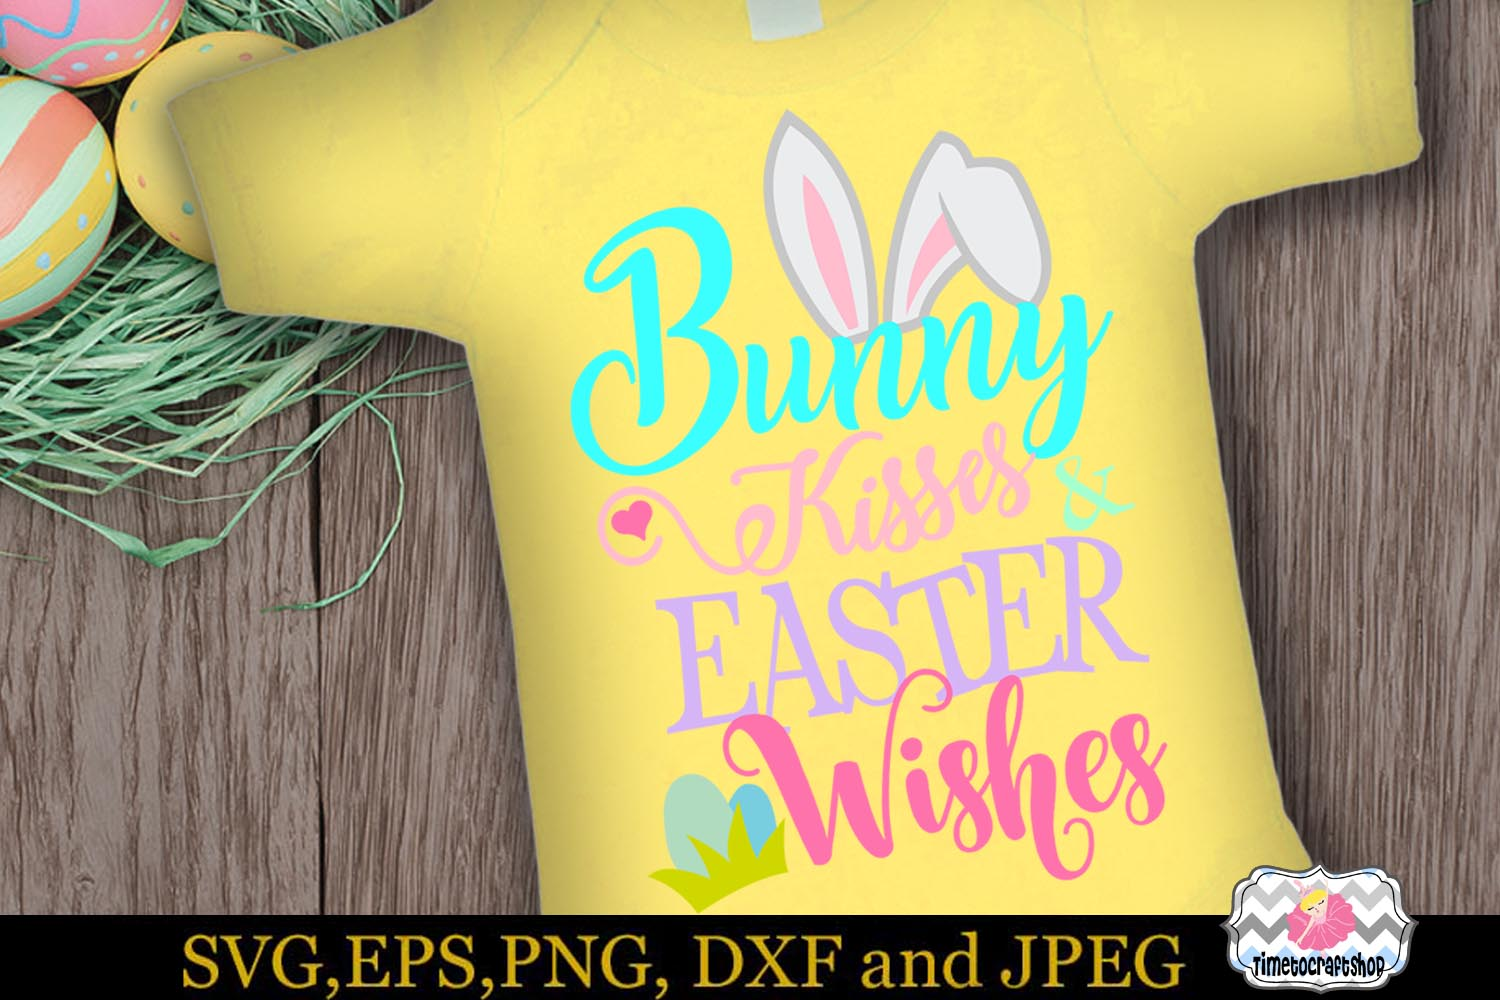 SVG, Eps, Dxf & Png Bunny Kisses and Easter Wishes example image 1